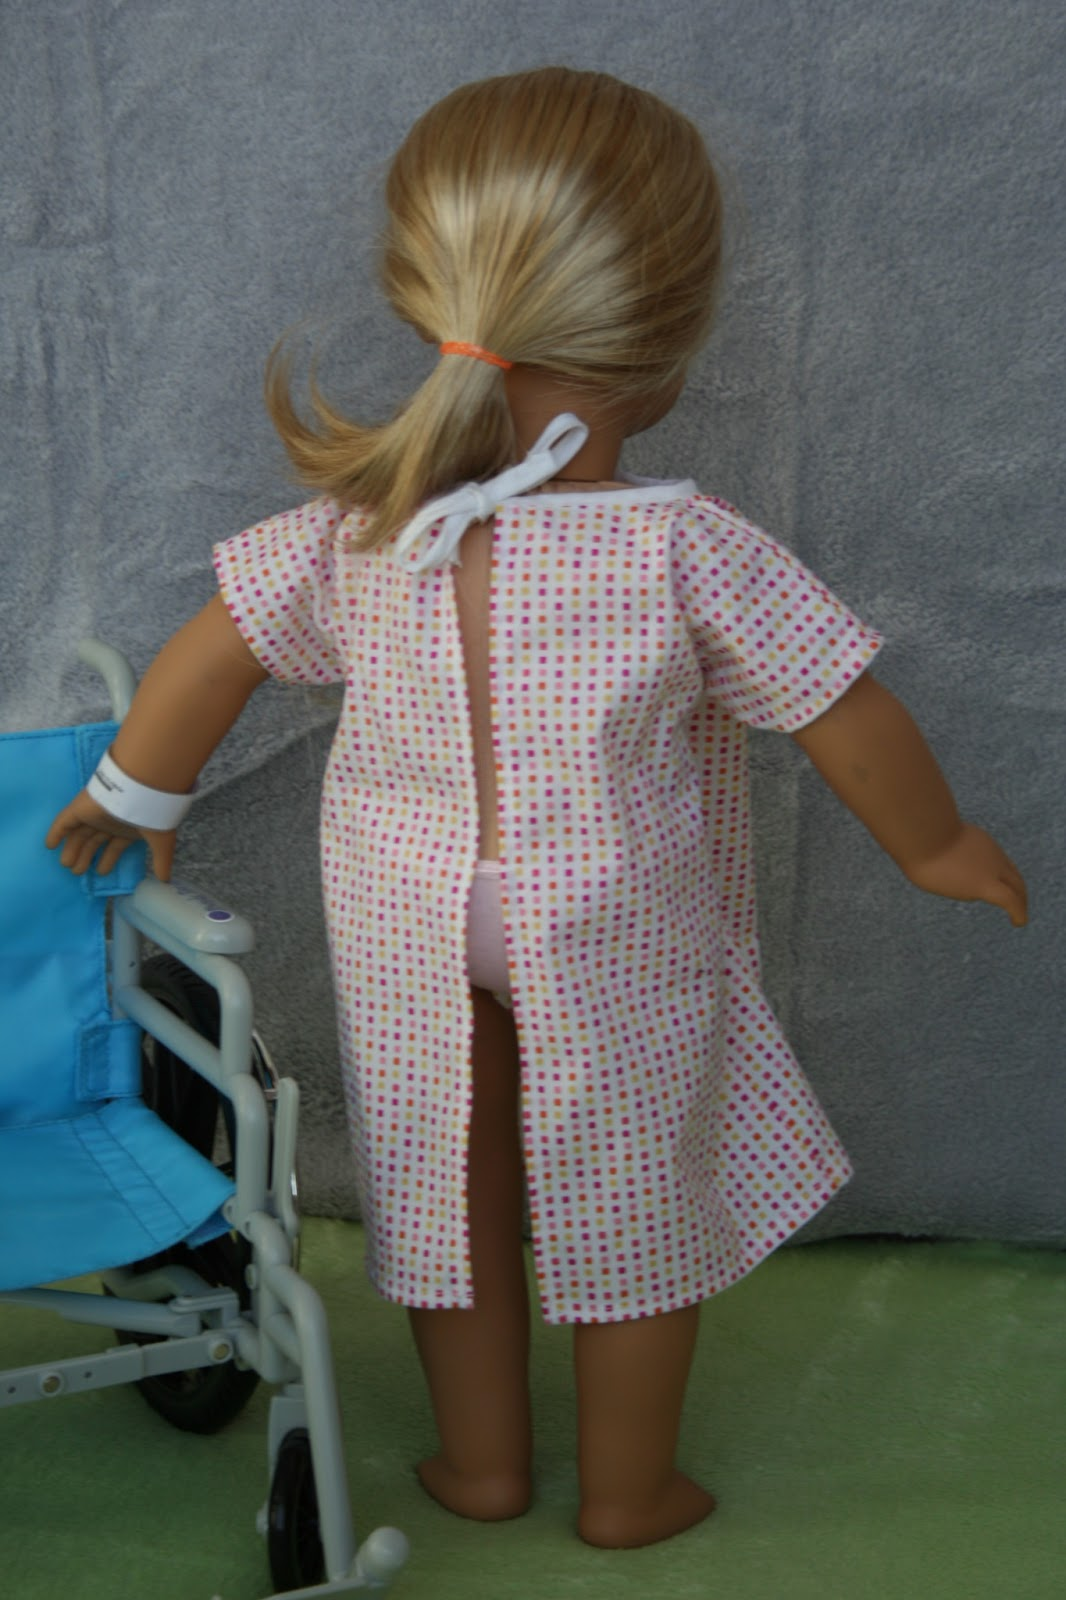 Arts and Crafts for your American Girl Doll: Hospital Gown and wrist ...